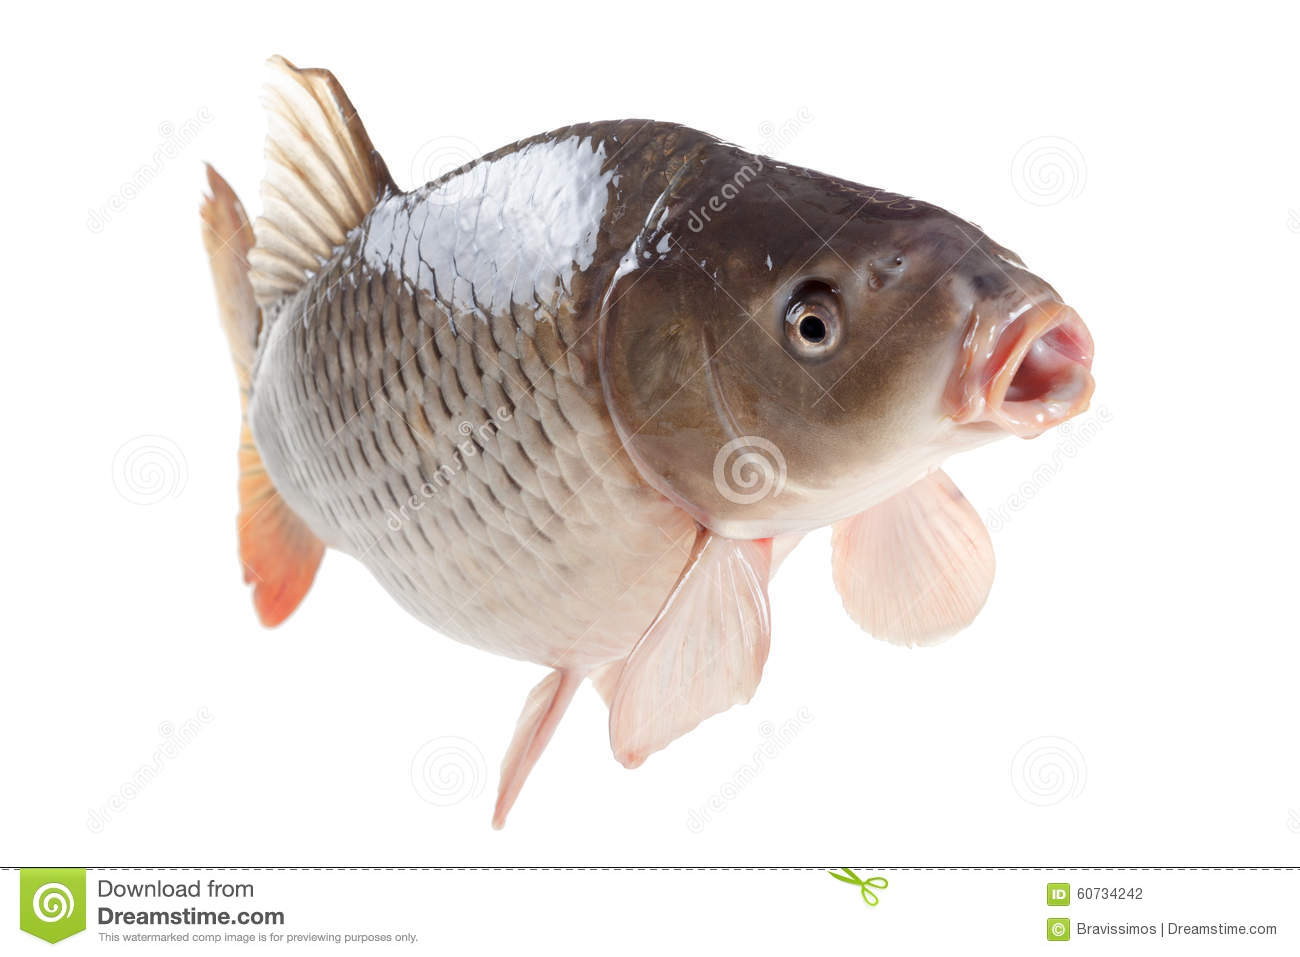 Swimming carp fish isolated on white background stock for Dream of fish swimming